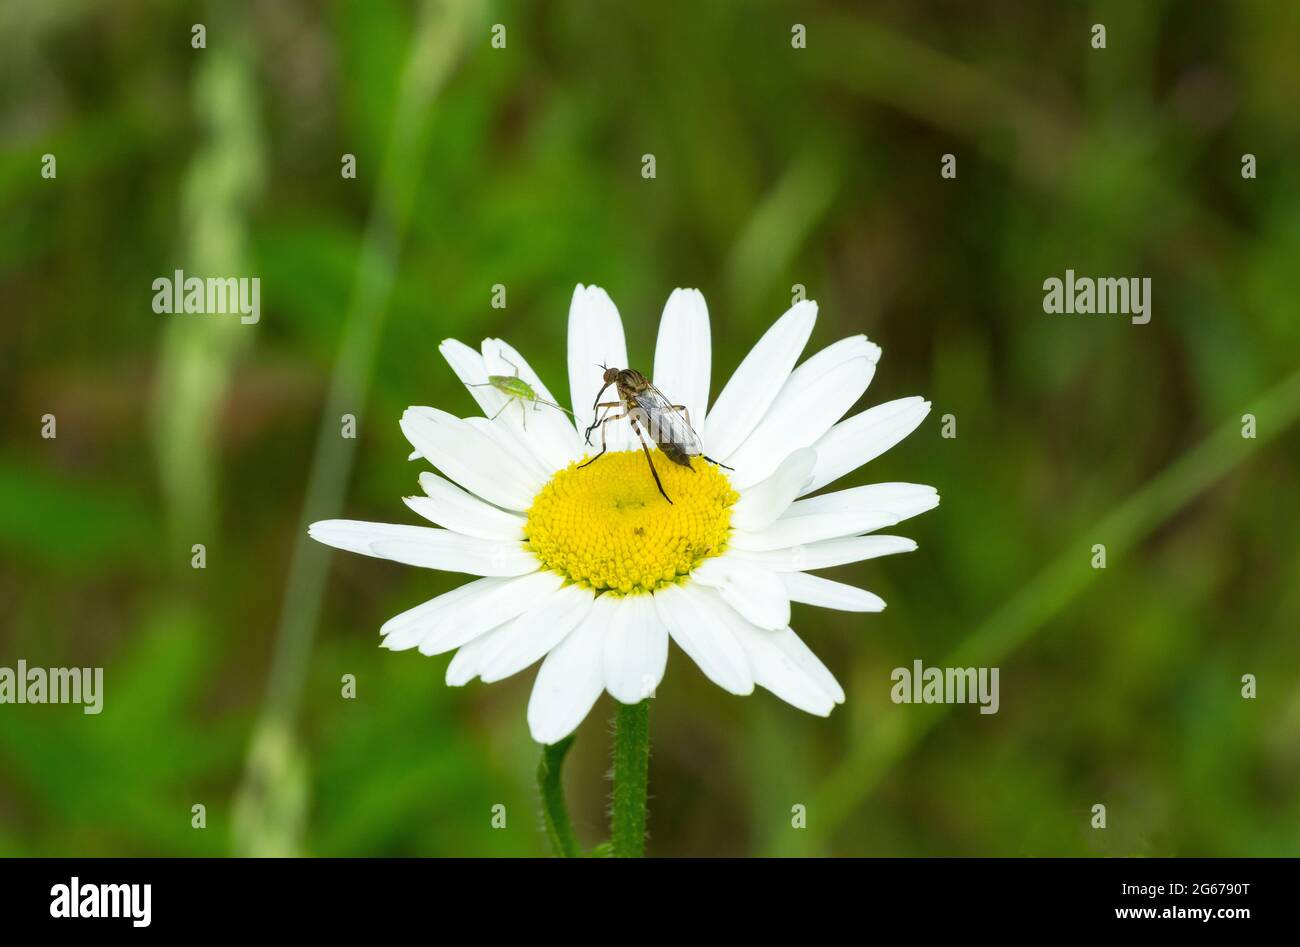 oxeye-daisy-greenfly-and-flying-insect-2G6790T.jpg